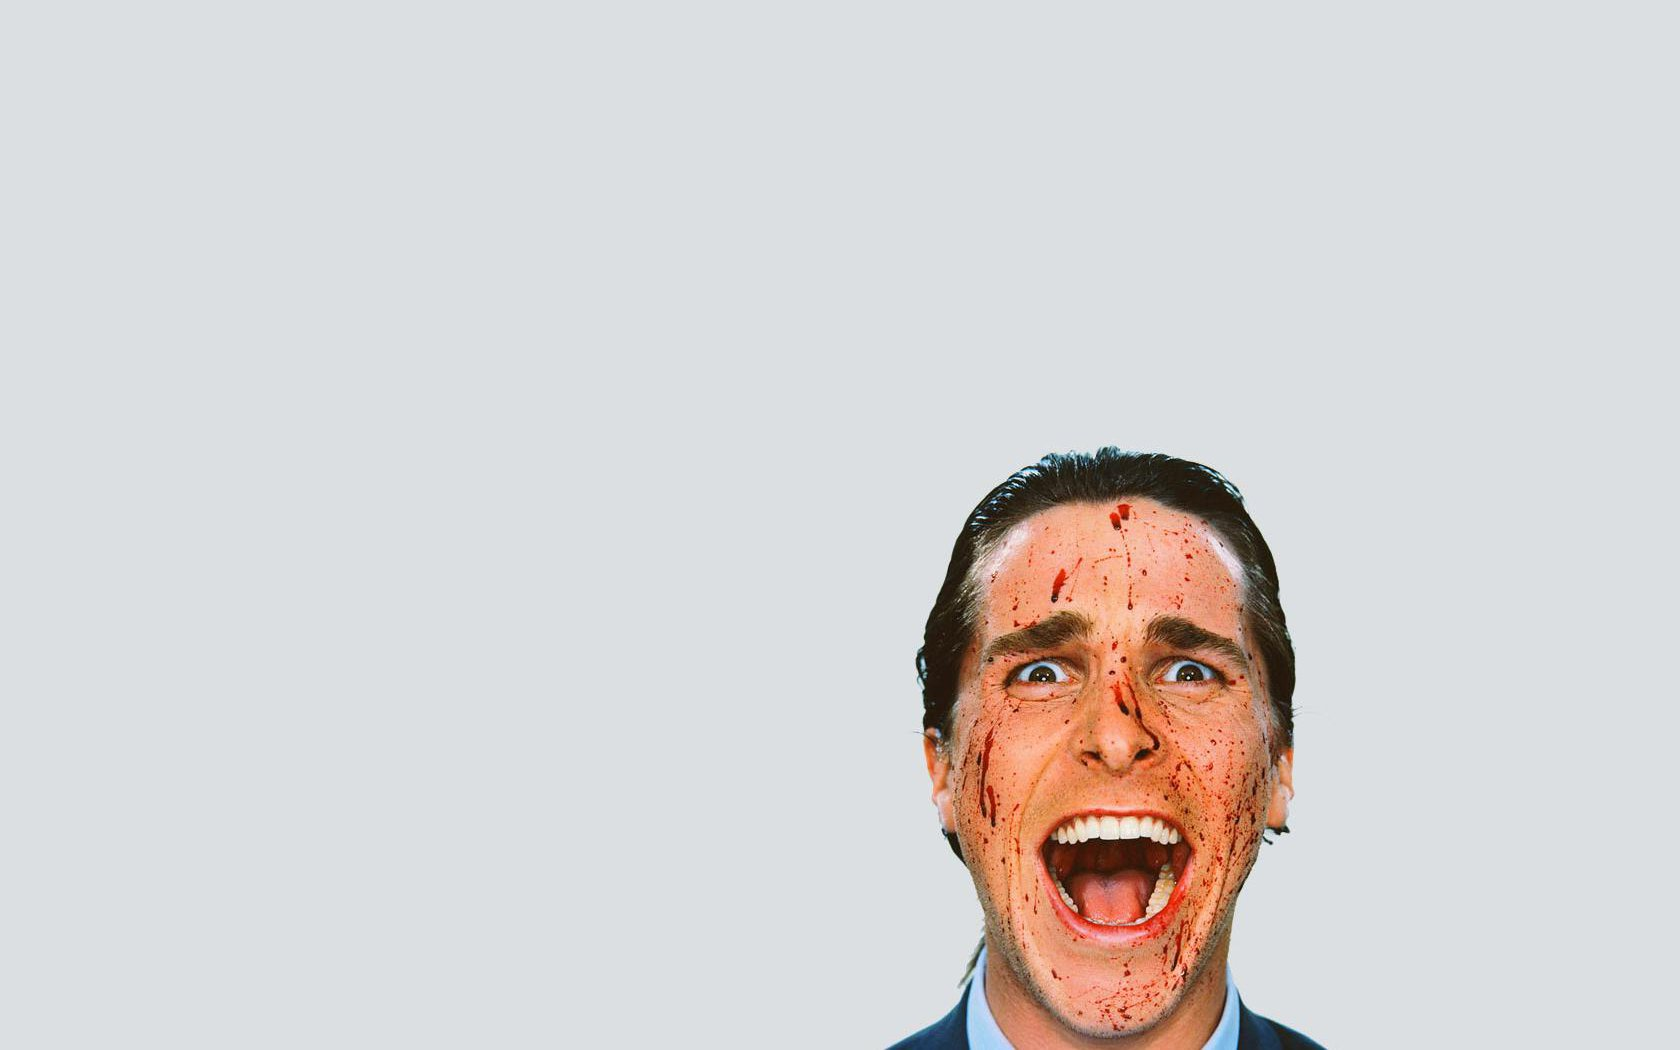 Christian Bale Iphone Wallpaper American Psycho Wallpaper And Background Image 1680x1050